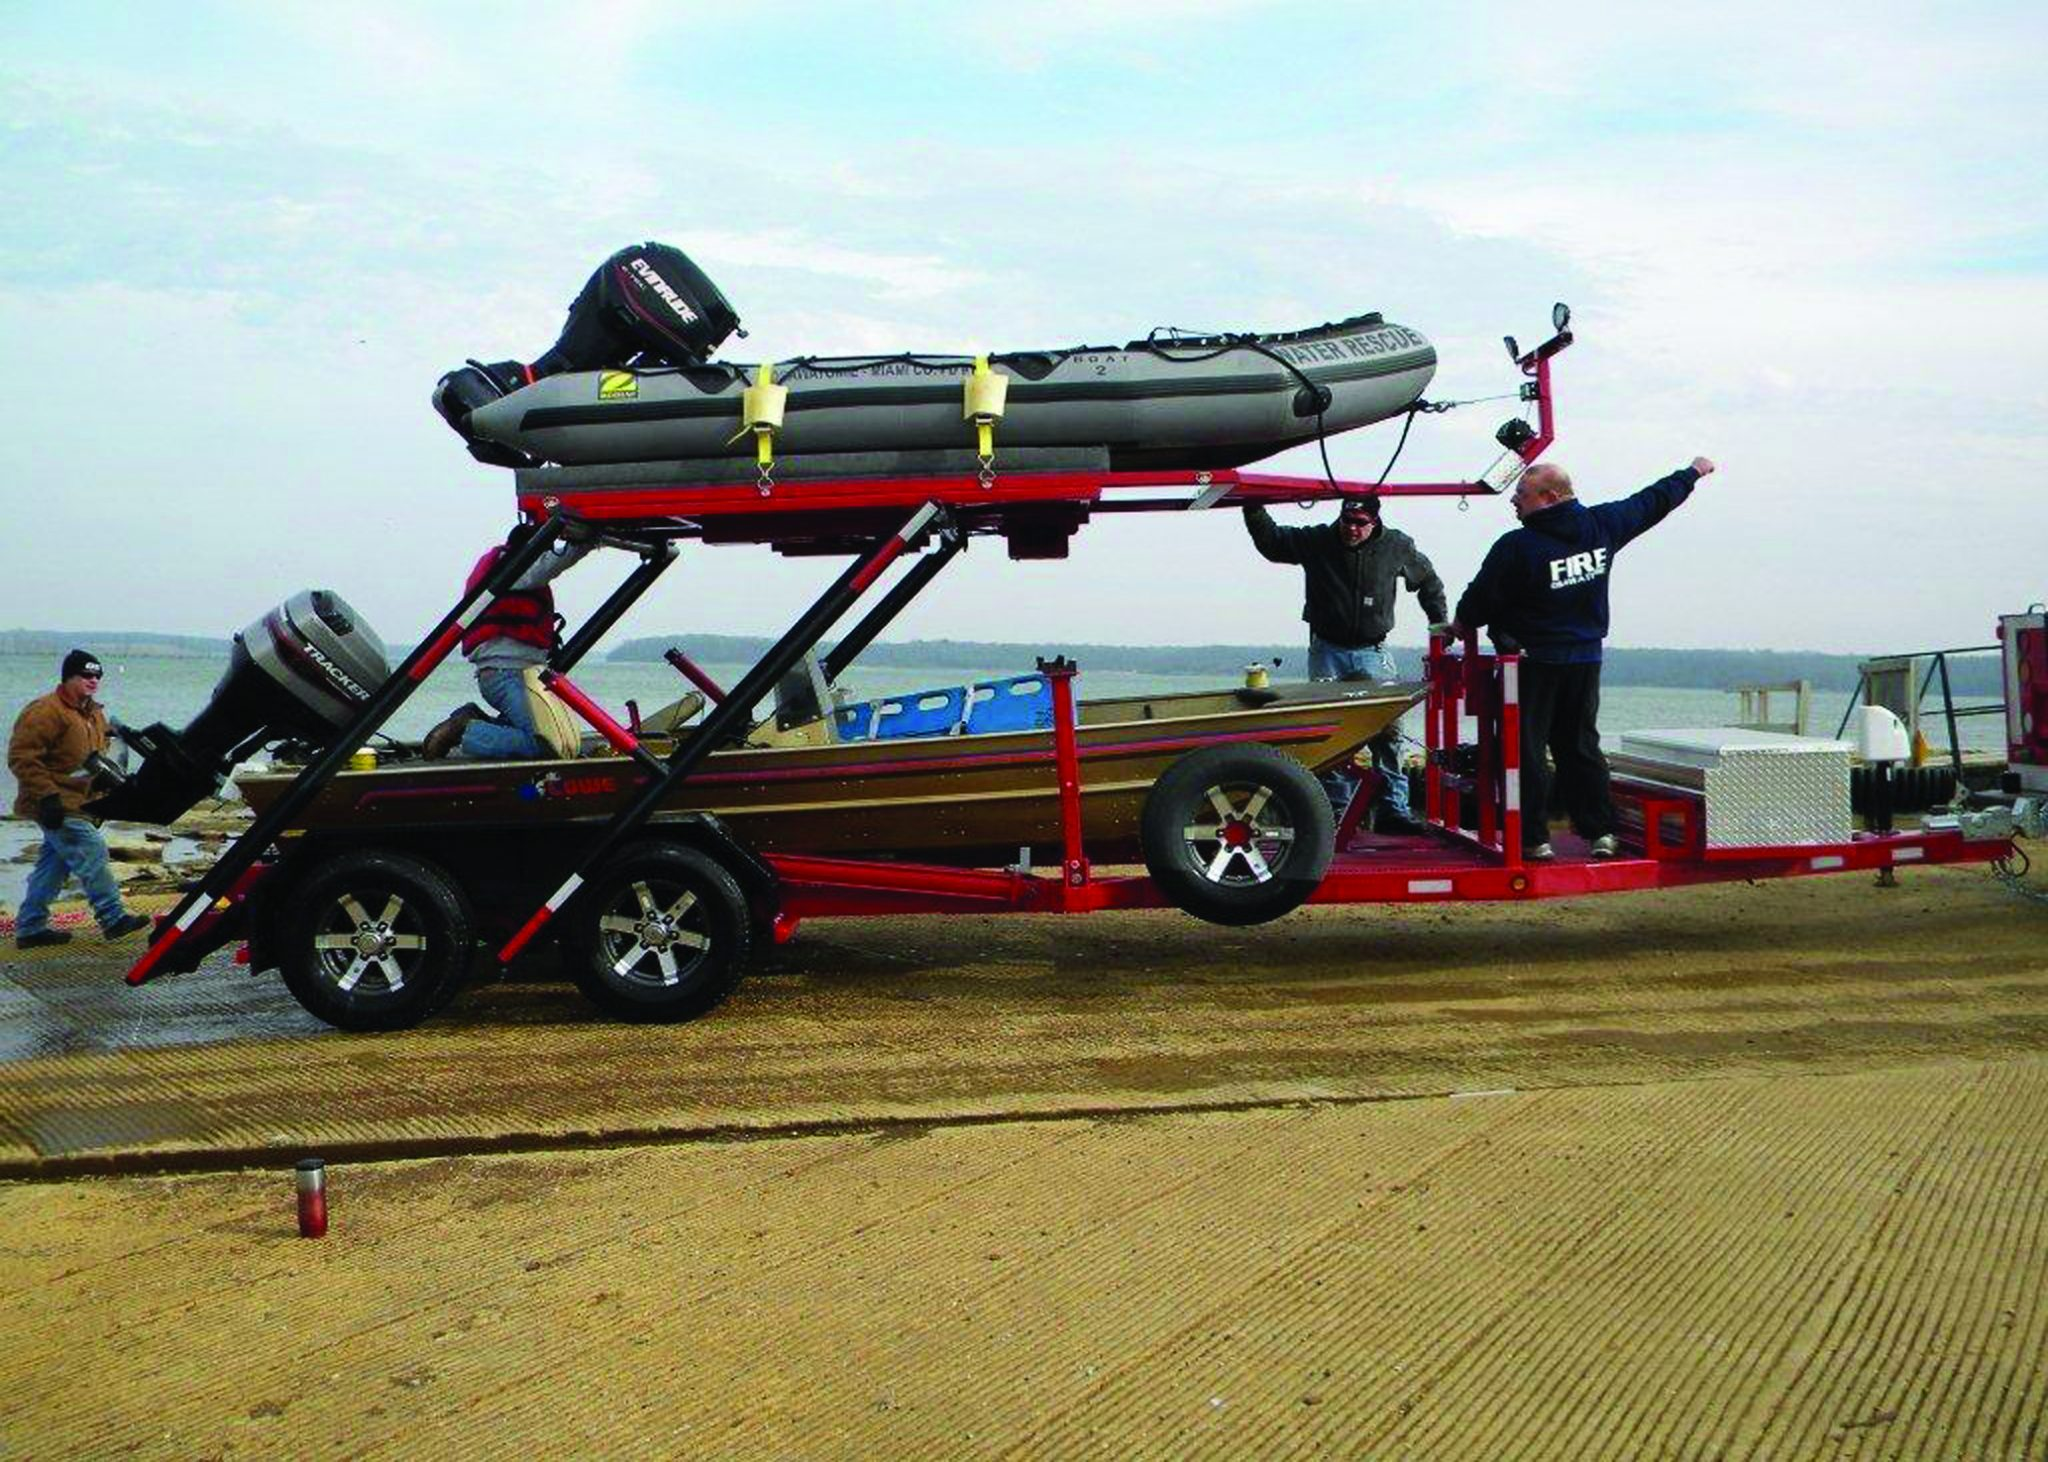 Stacker Trailer Improves Water Rescue Response Time